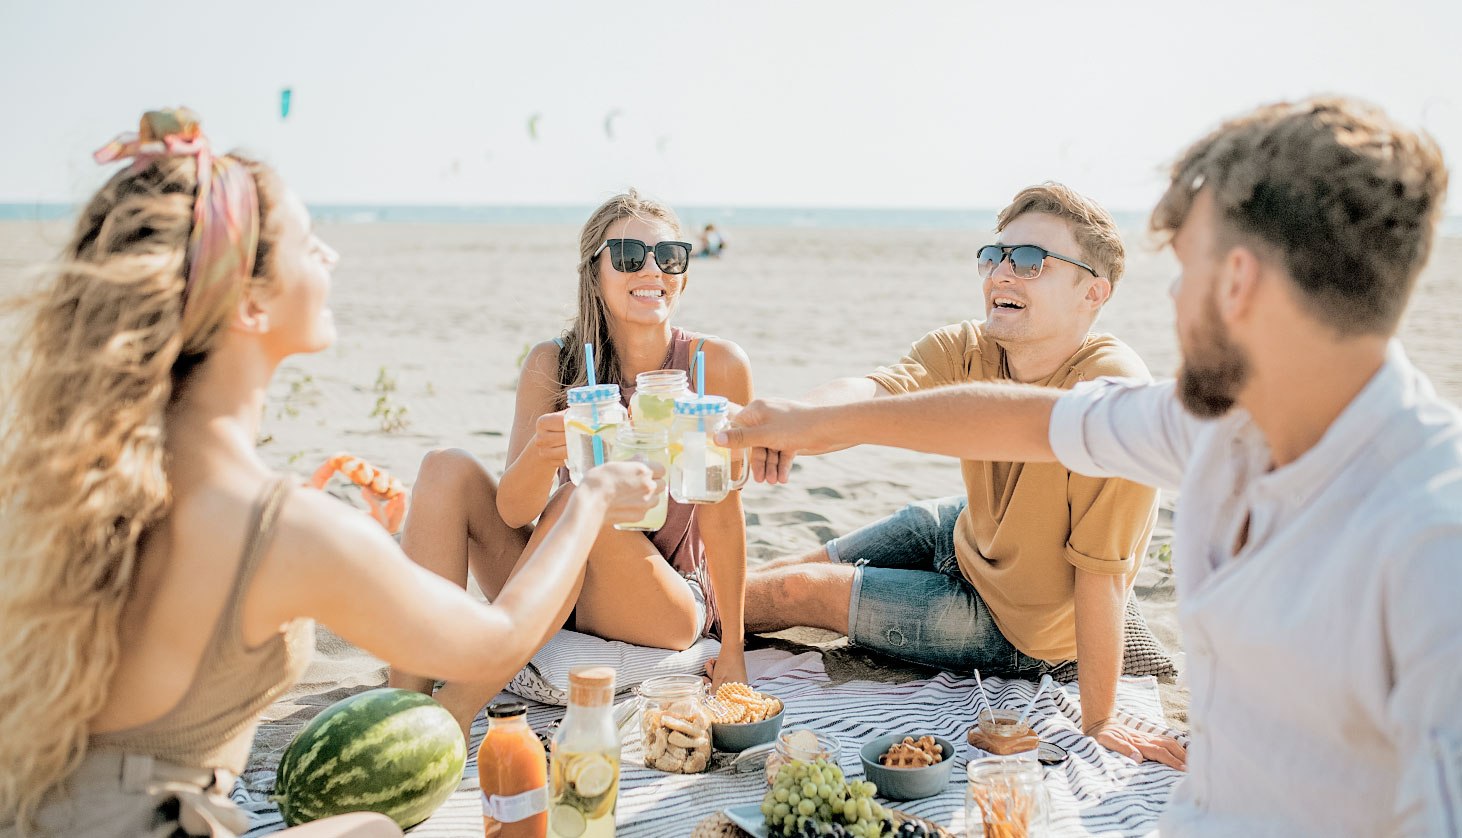 12 Tips for a Successful Beach Picnic + Moodboards